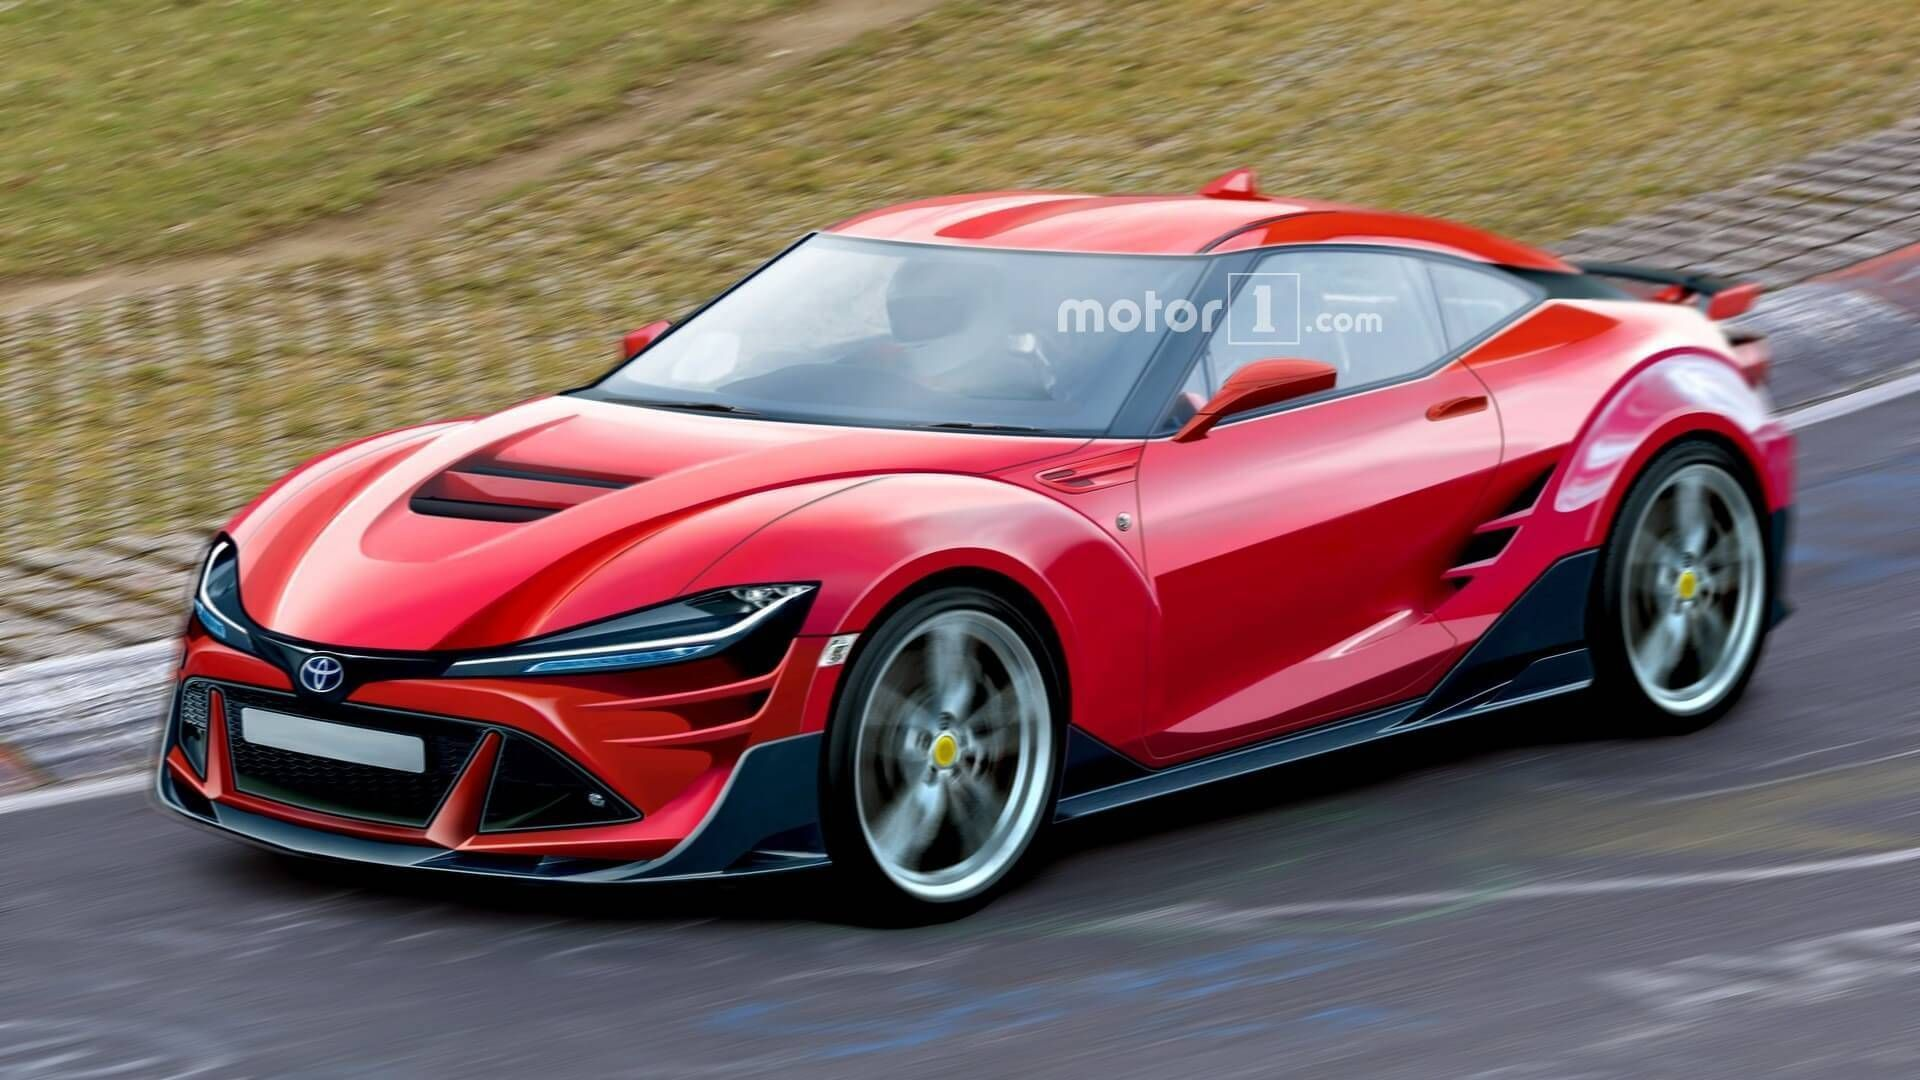 See Models And Pricing As Well As Photos And Videos About Toyota Gt86 2020 We Reviews The Toyota Gt86 2020 Photo Where Con Toyota Gt86 Toyota 86 Concept Cars